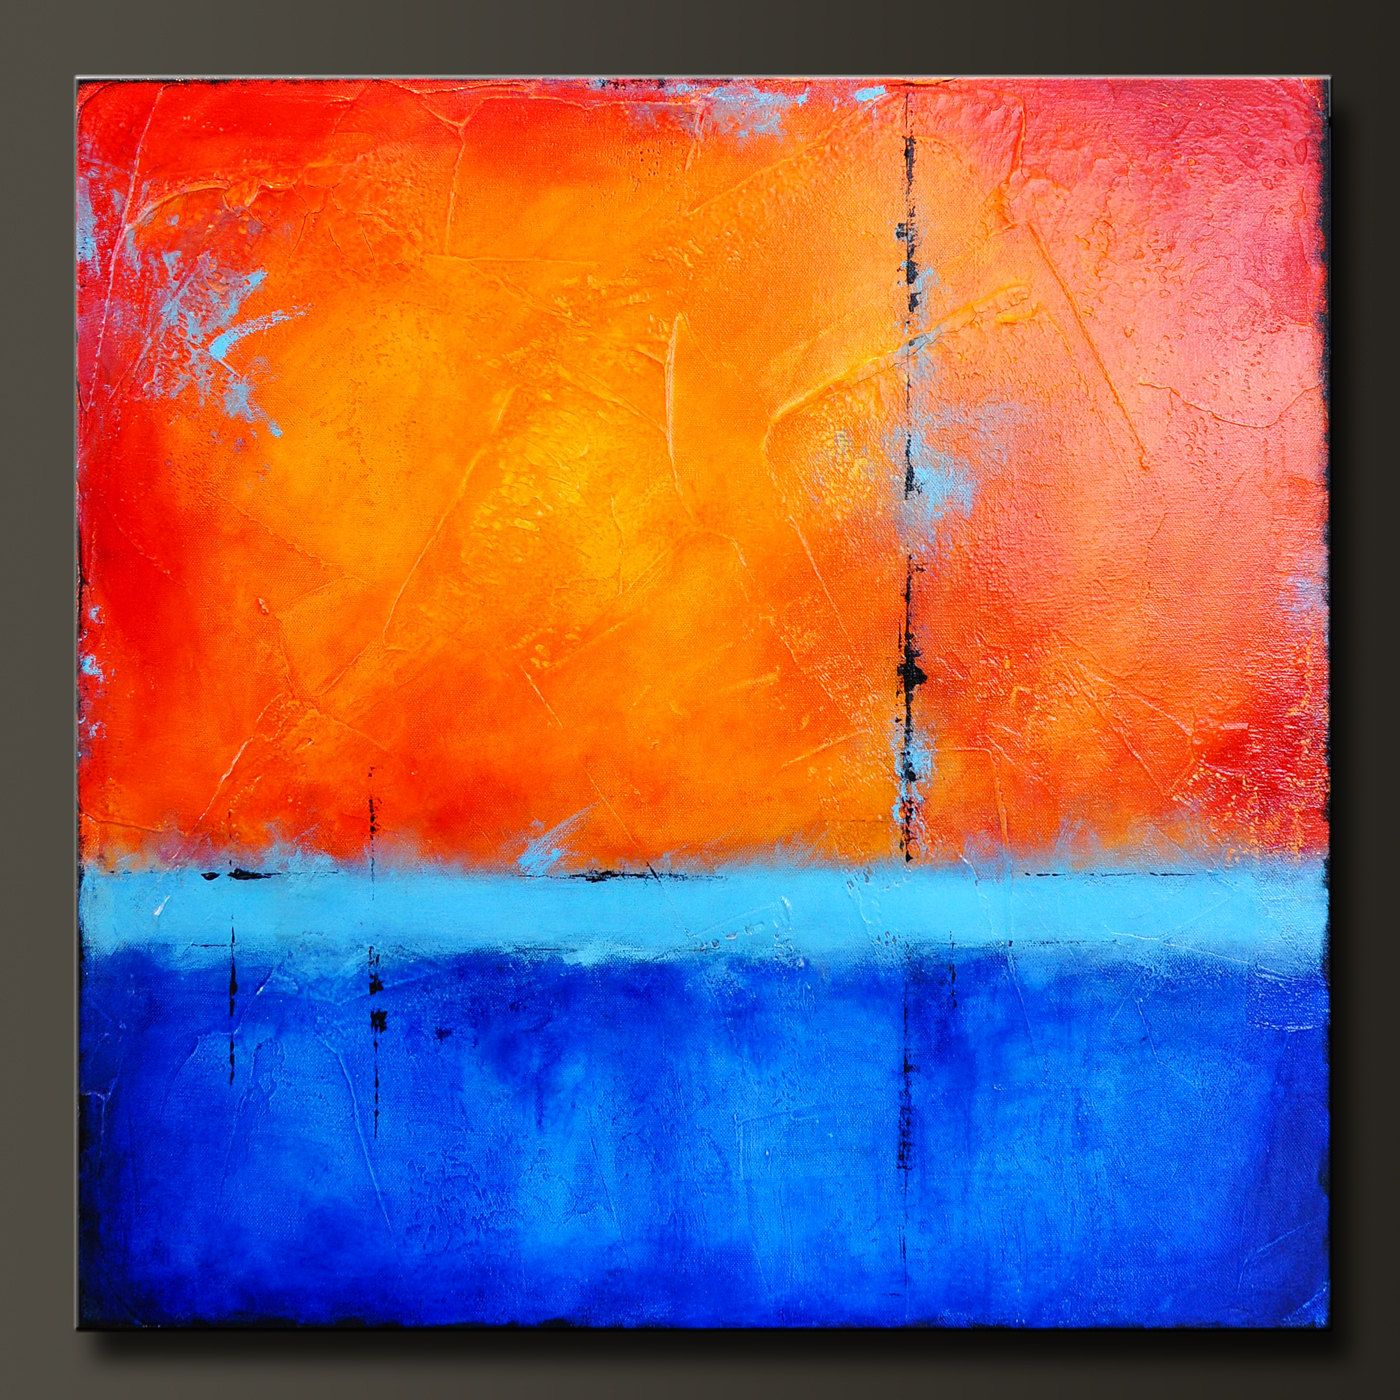 24 x 24 - Abstract Acrylic Painting - Contemporary Wall Art.